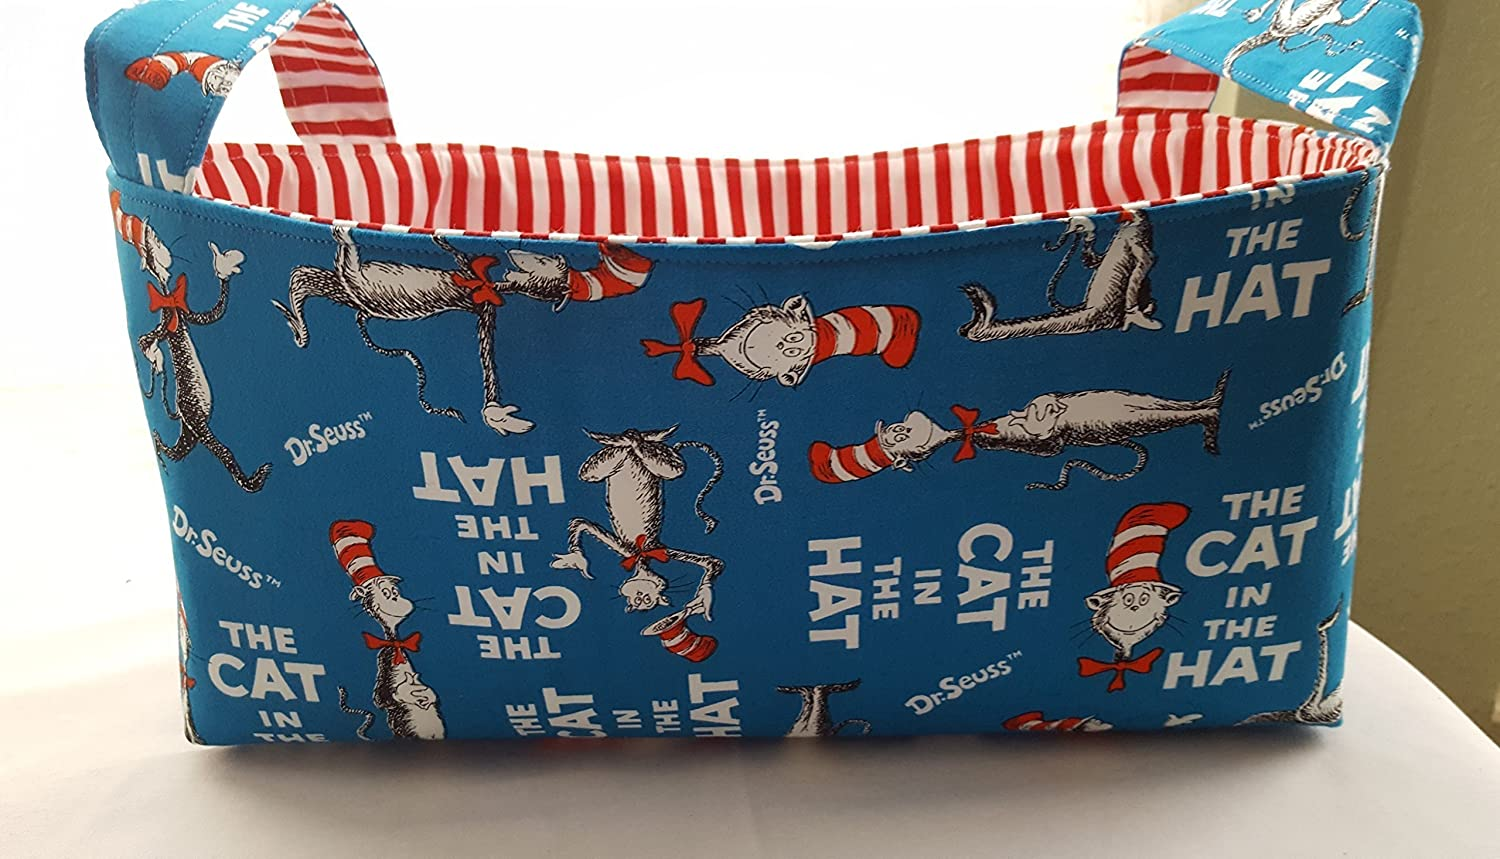 Long Diaper Caddy Storage Container Basket Fabric Organizer Bin - Nursery Decor - Dr Seuss The Cat In the Hat